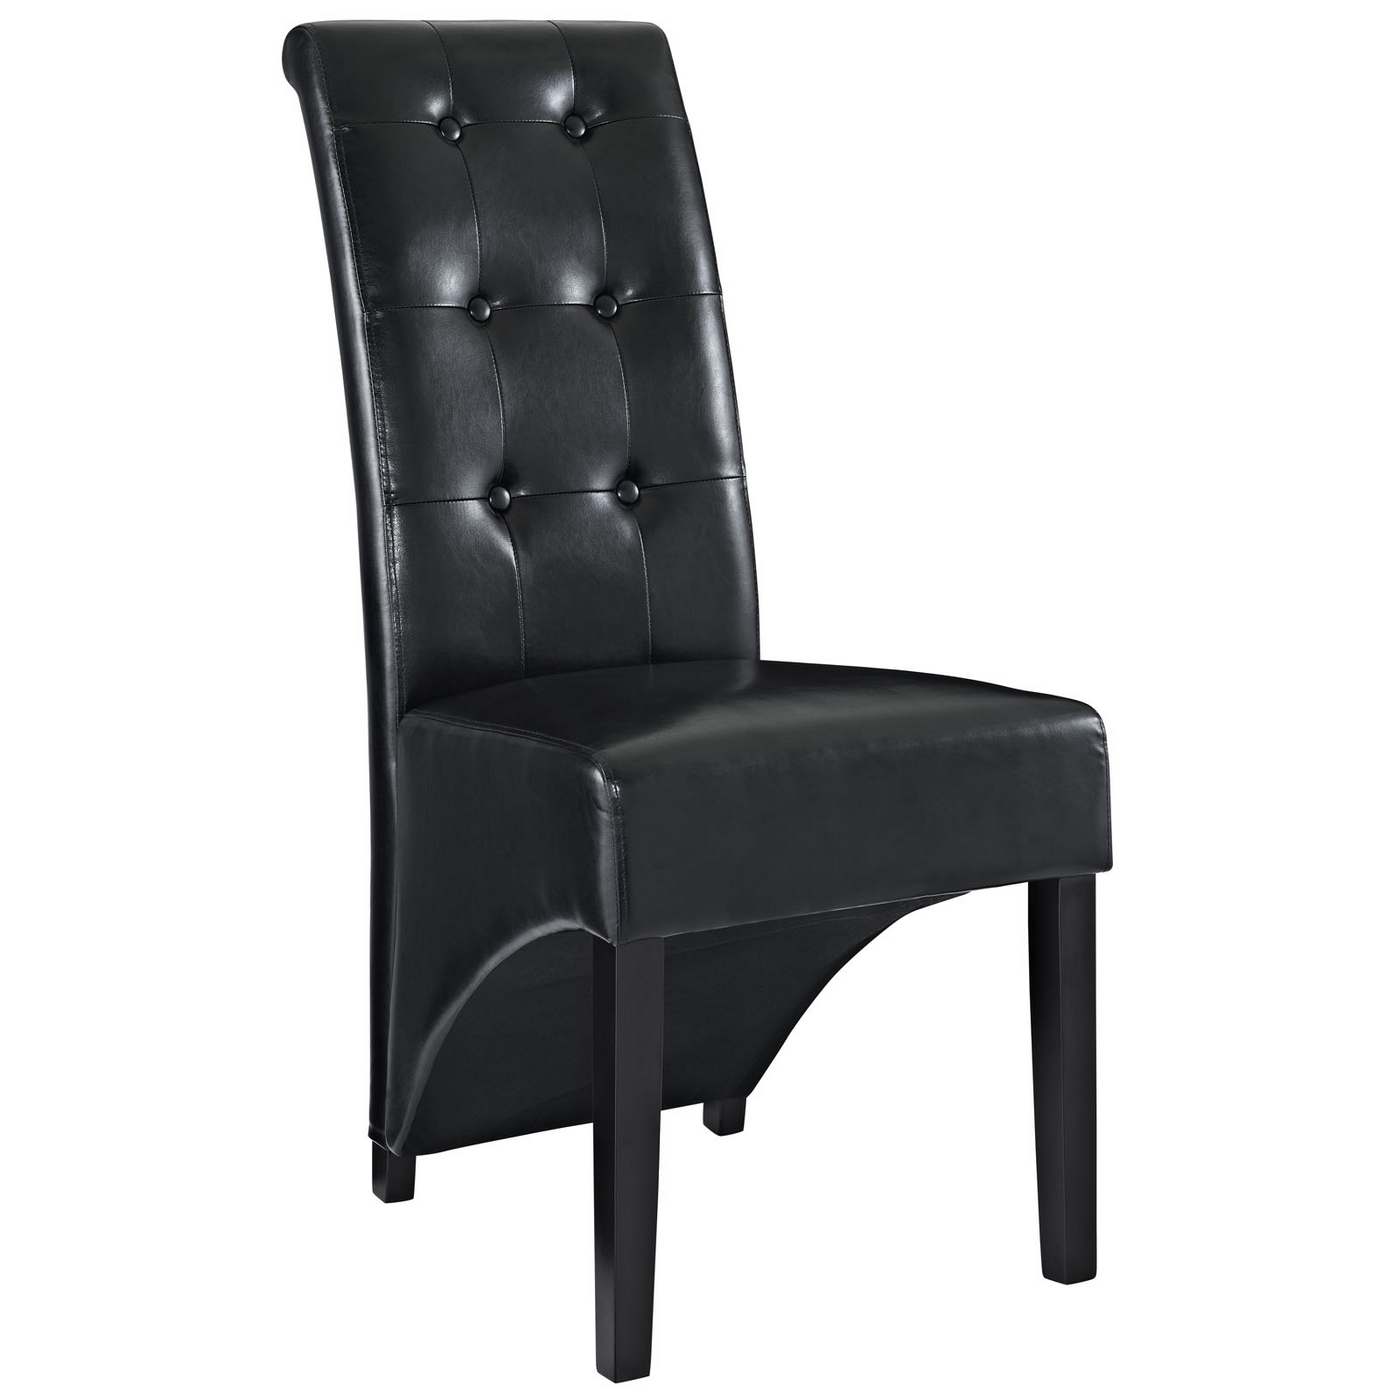 black tufted dining chair glider chairs on sale preside modern stylish button vinyl side